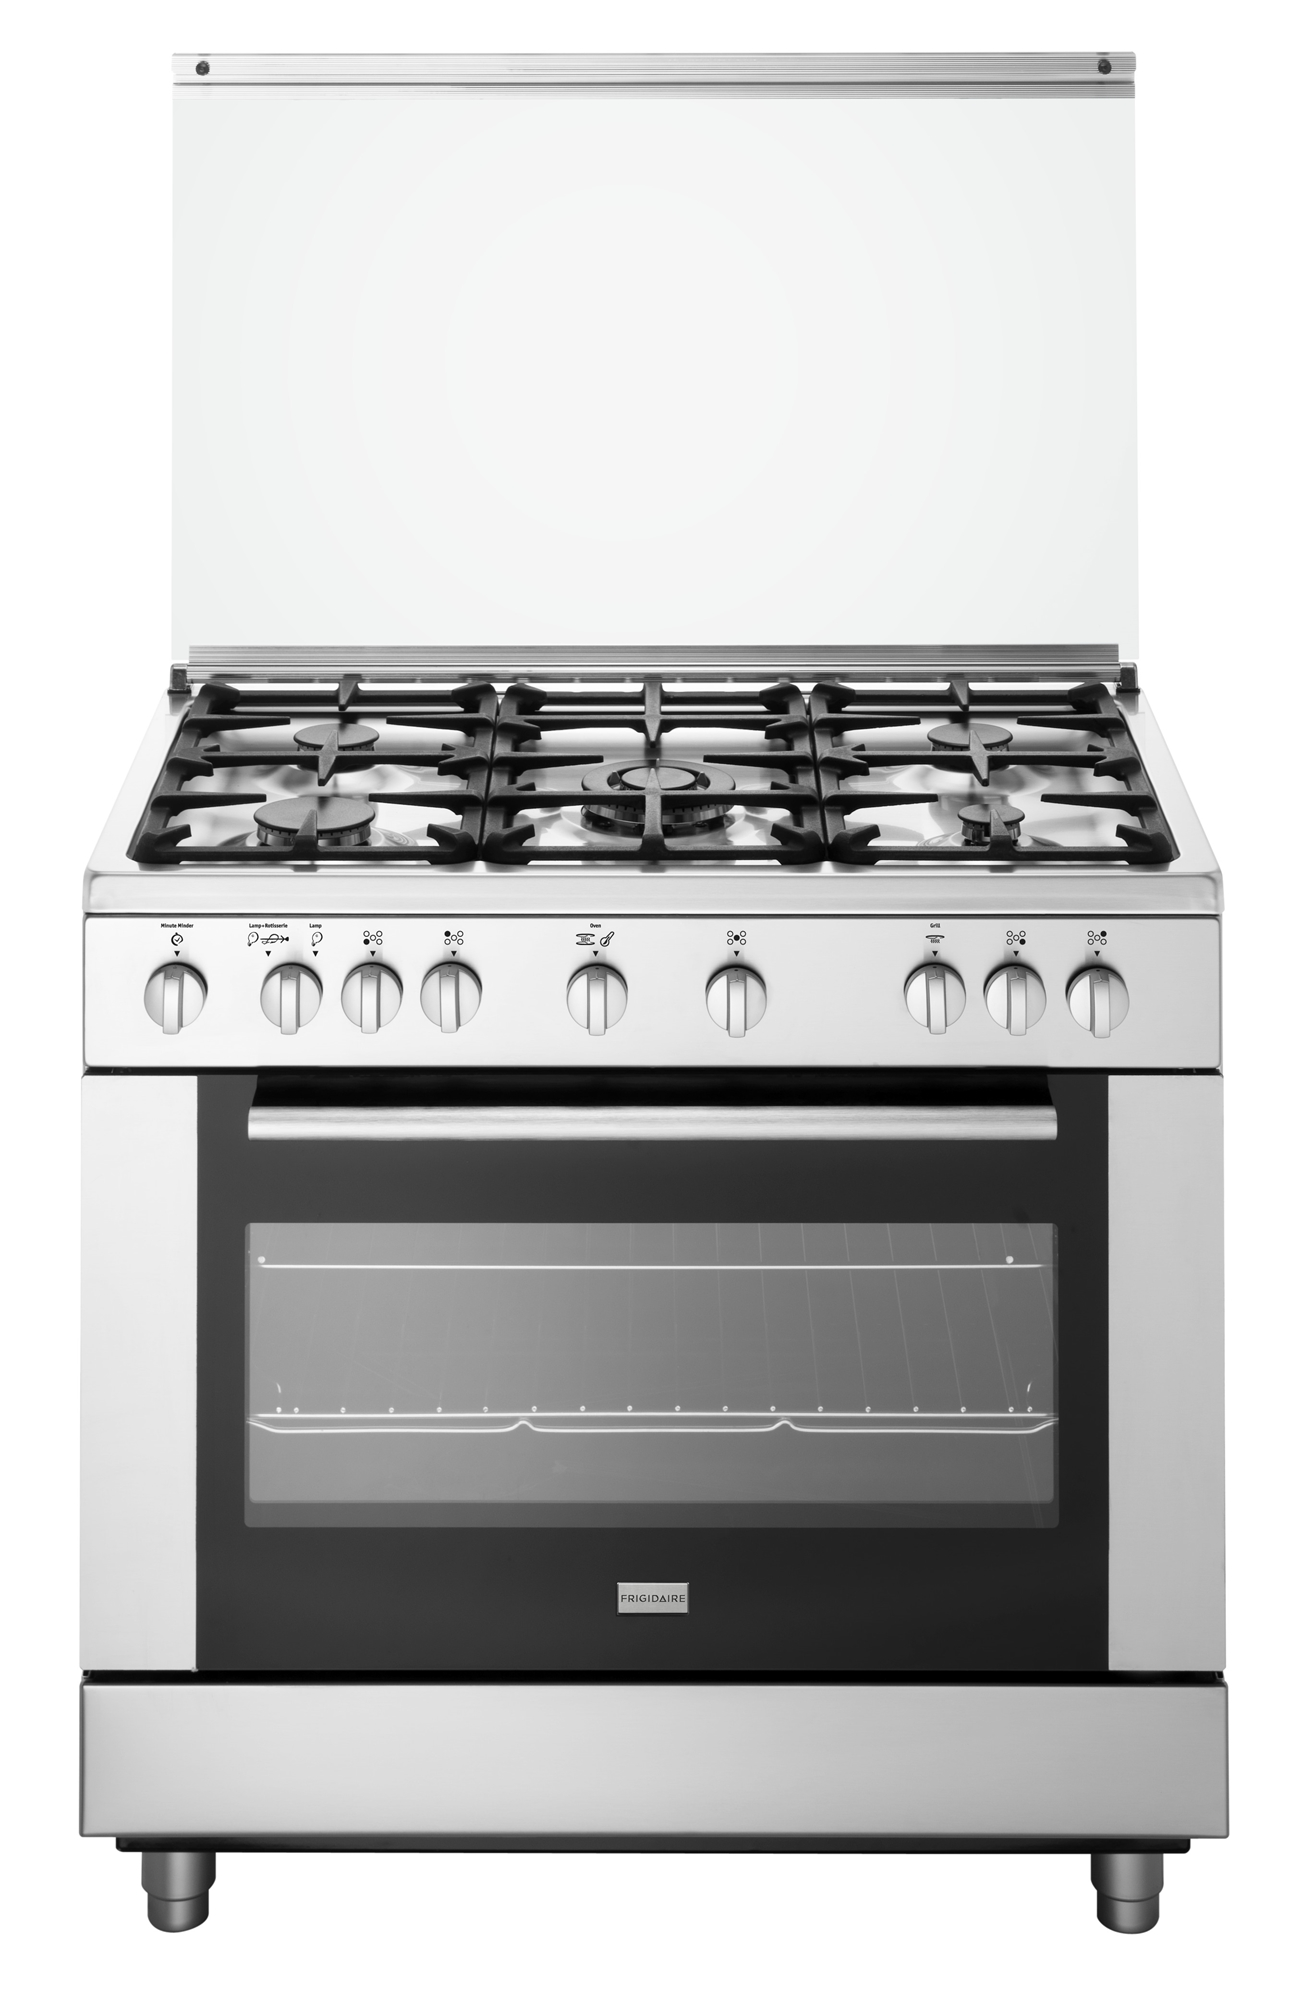 electrolux 90cm oven. Oven Net Capacity (liters): 124.7, Cooktop Width (cm): 90cm Electrolux F